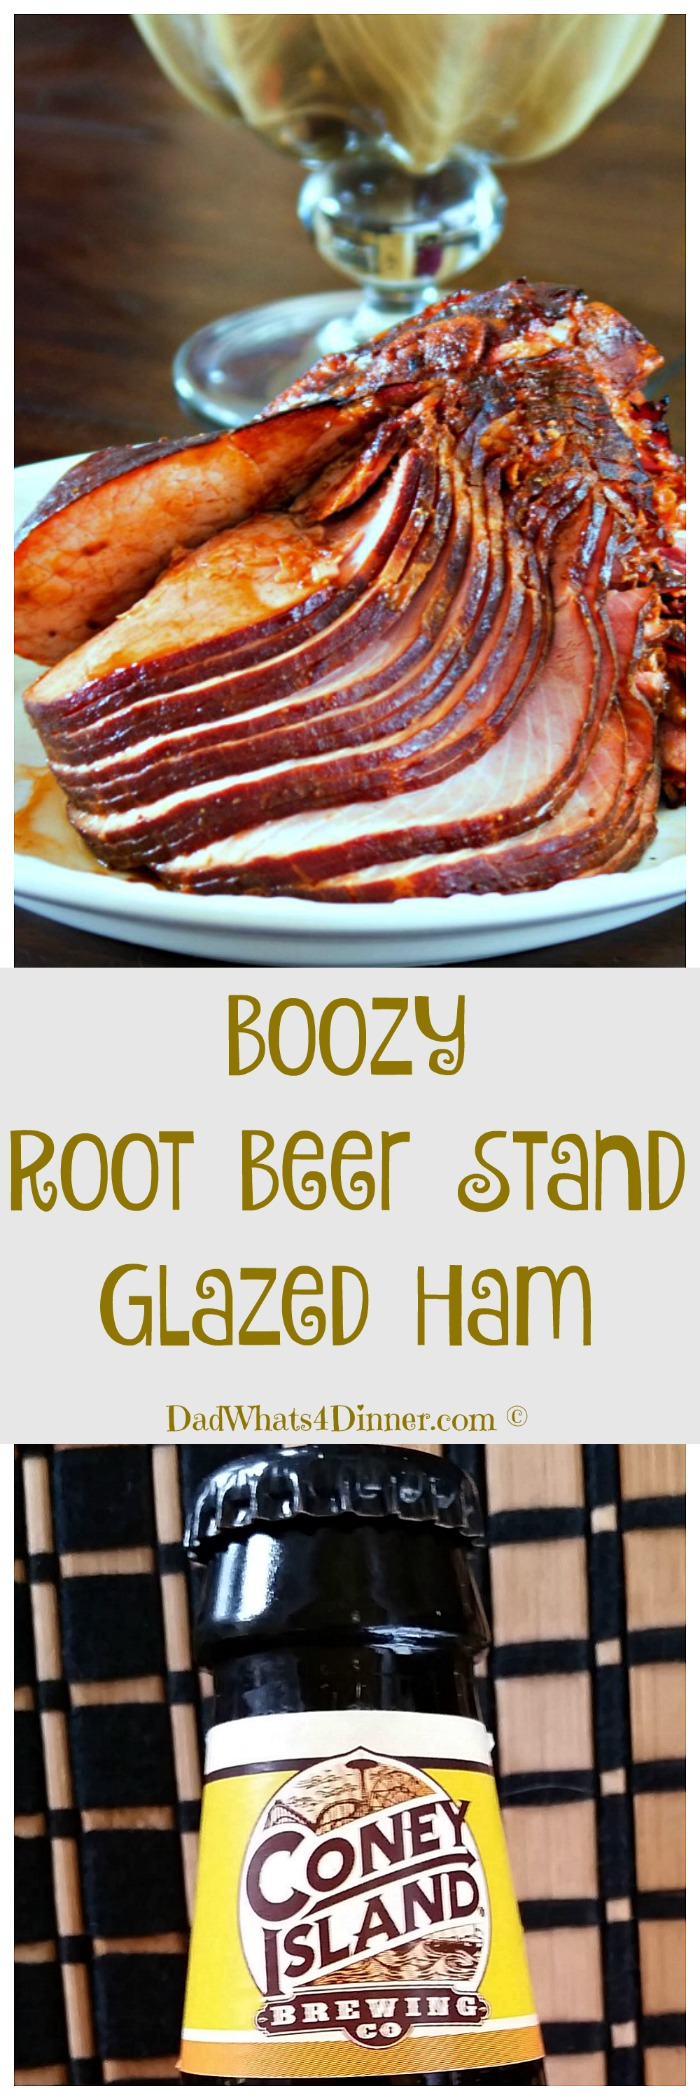 My Boozy Root Beer Stand Glazed Ham is hands down the best glaze for your Easter Ham. The glaze is so good and all of the alcohol will burn off.